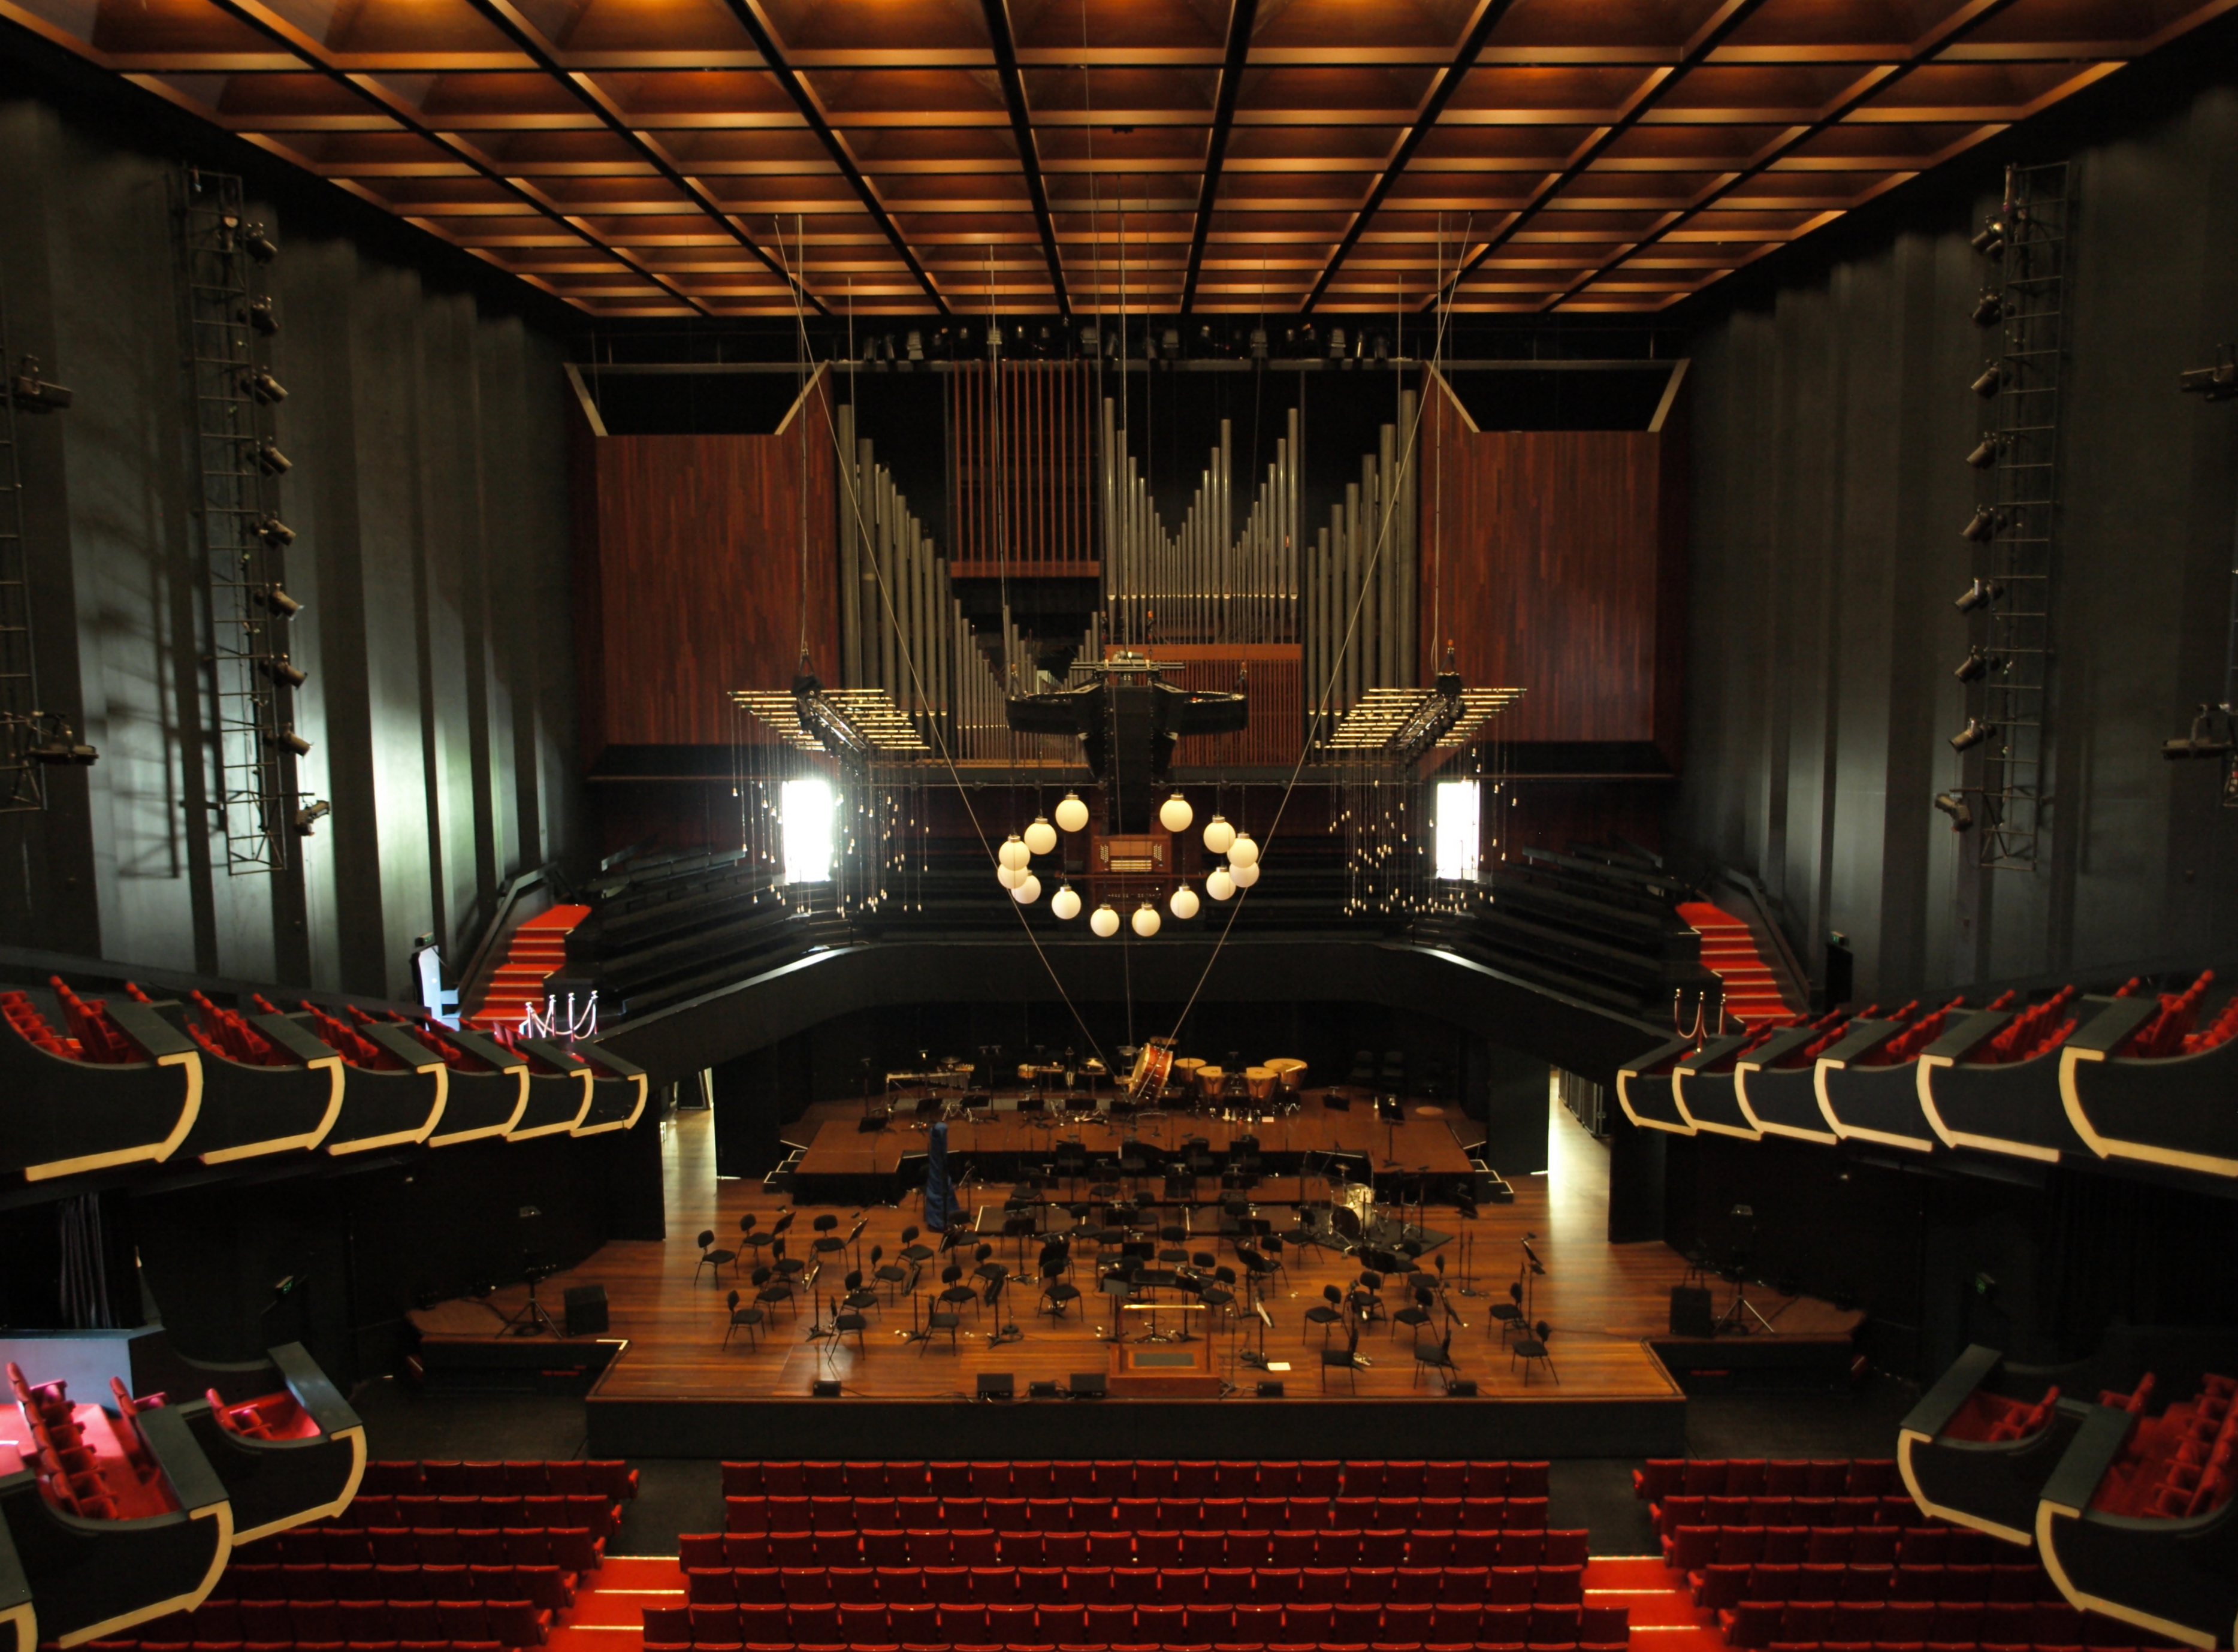 FilePerth Concert Hall Interiorjpg Wikimedia Commons